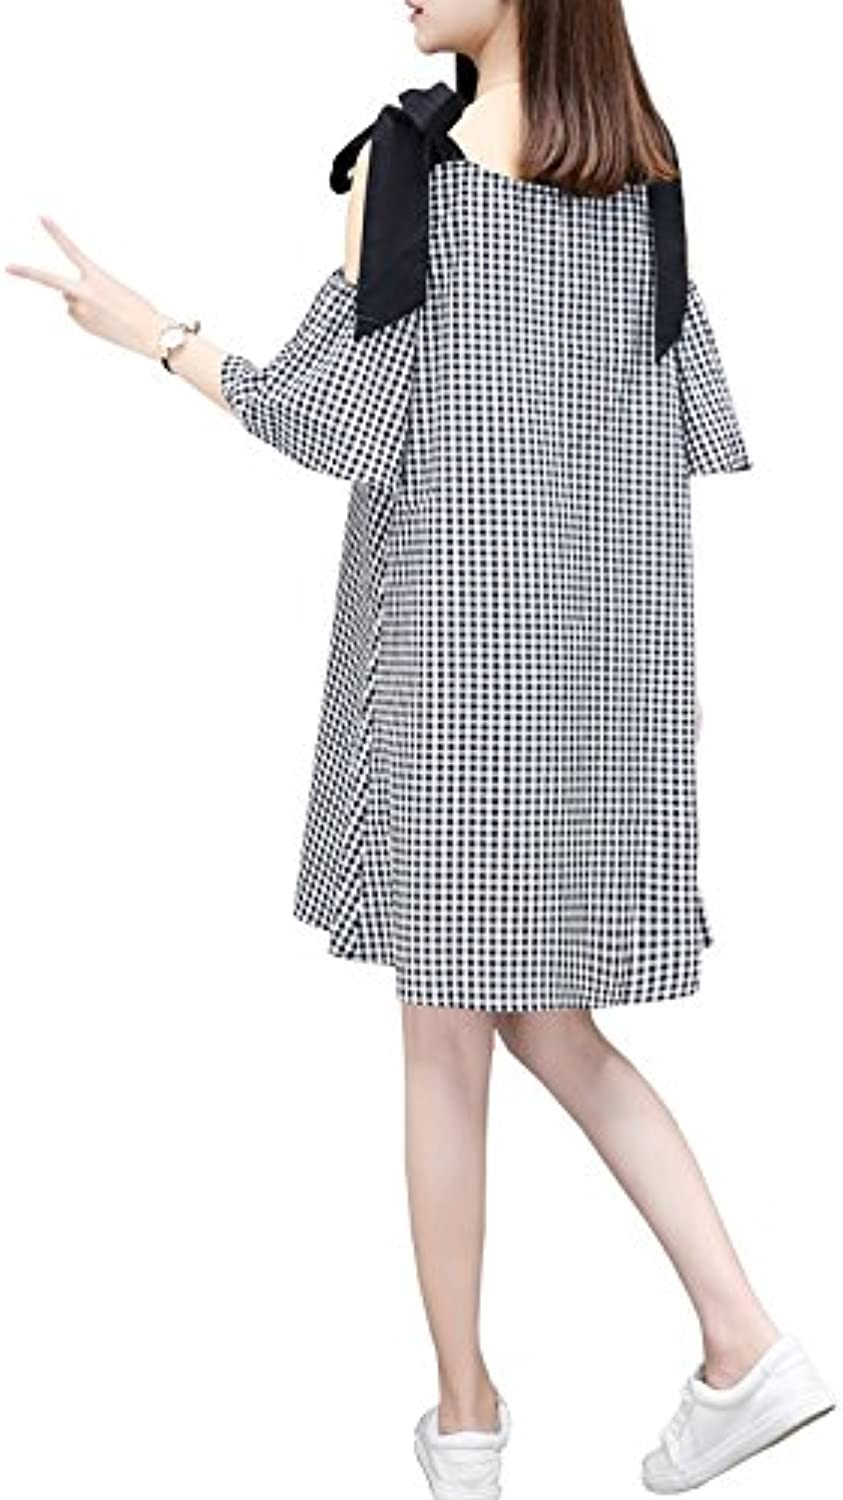 XIURONG Spring and Summer Leisure Dress Female Strapless ALine A Thin Loose Doll Dress